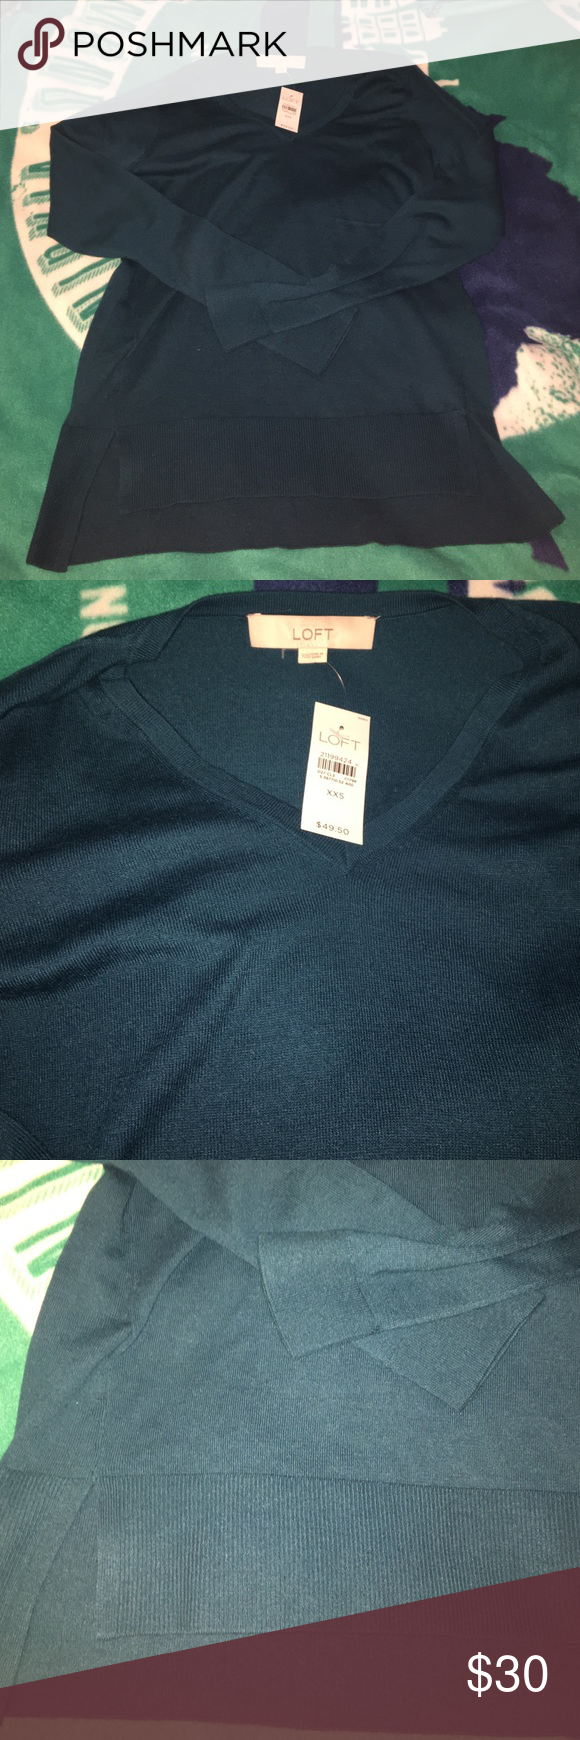 Loft Tunic Sweater Teal Green XXSmall Loft Brand new with tags ...